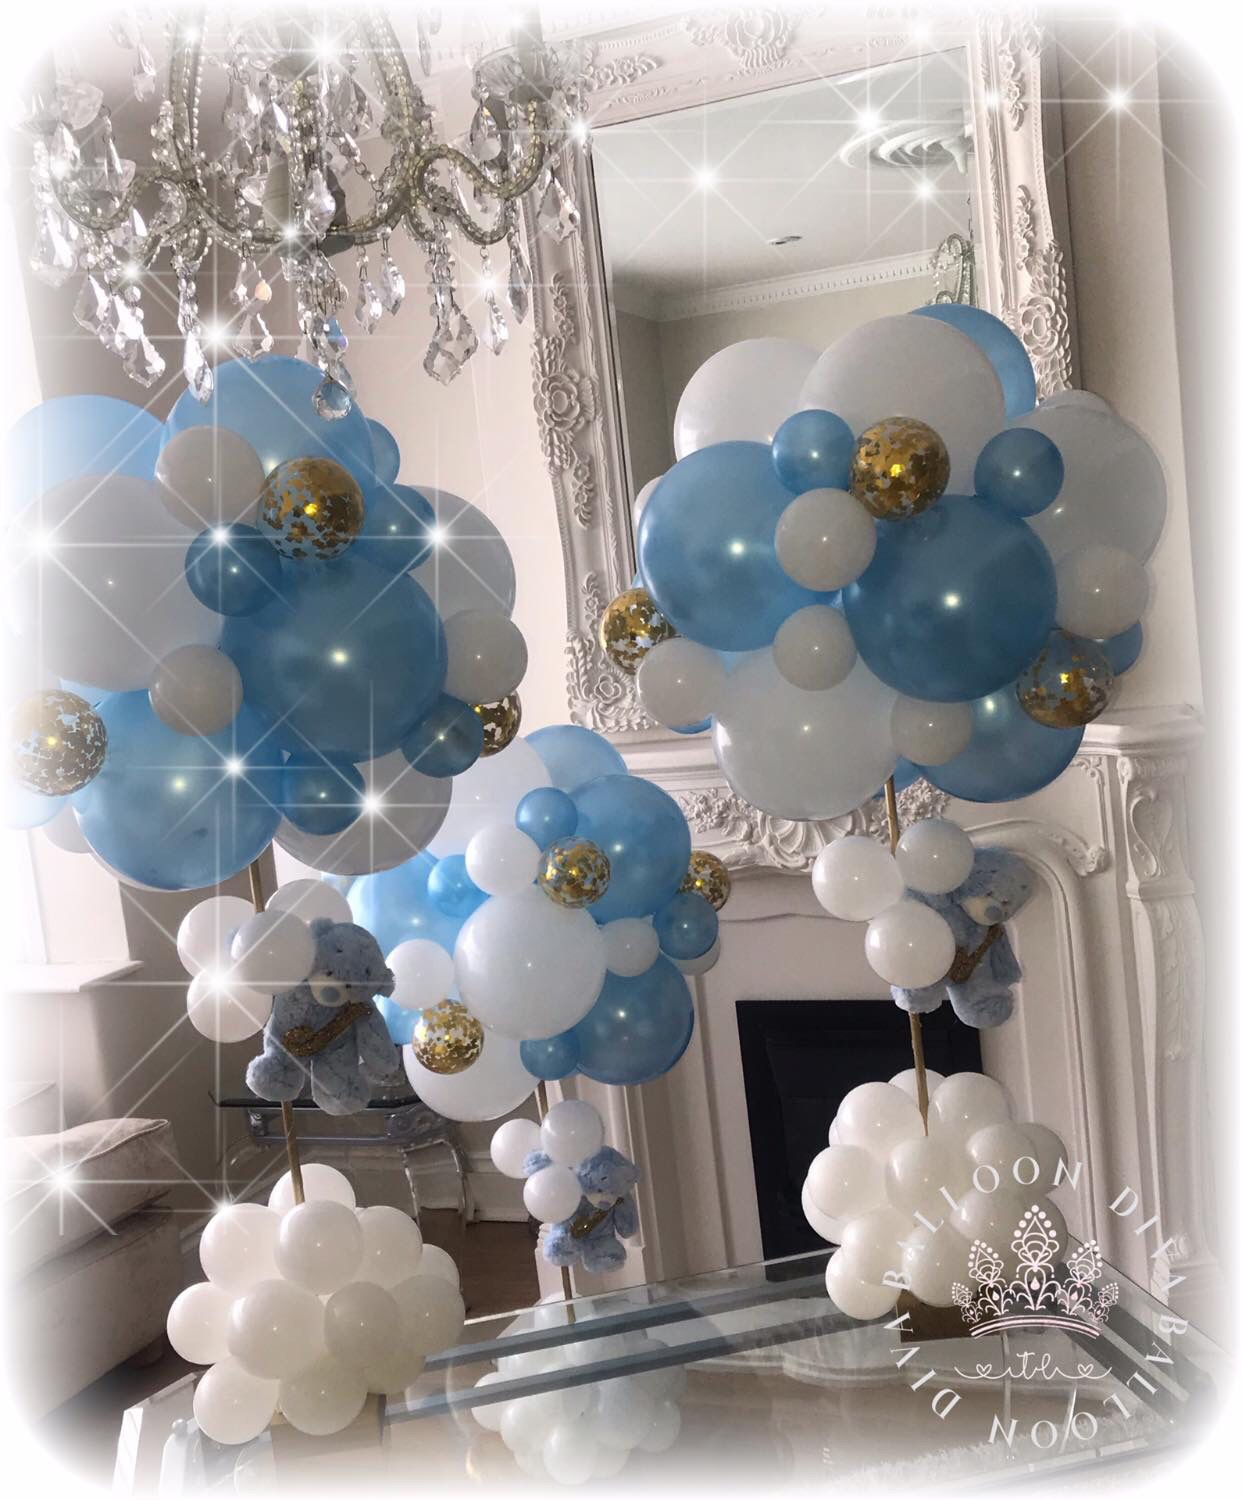 Pin By Sharon Moses On Sharon Wedding Christening Decorations Baloon Decorations Balloon Centerpieces